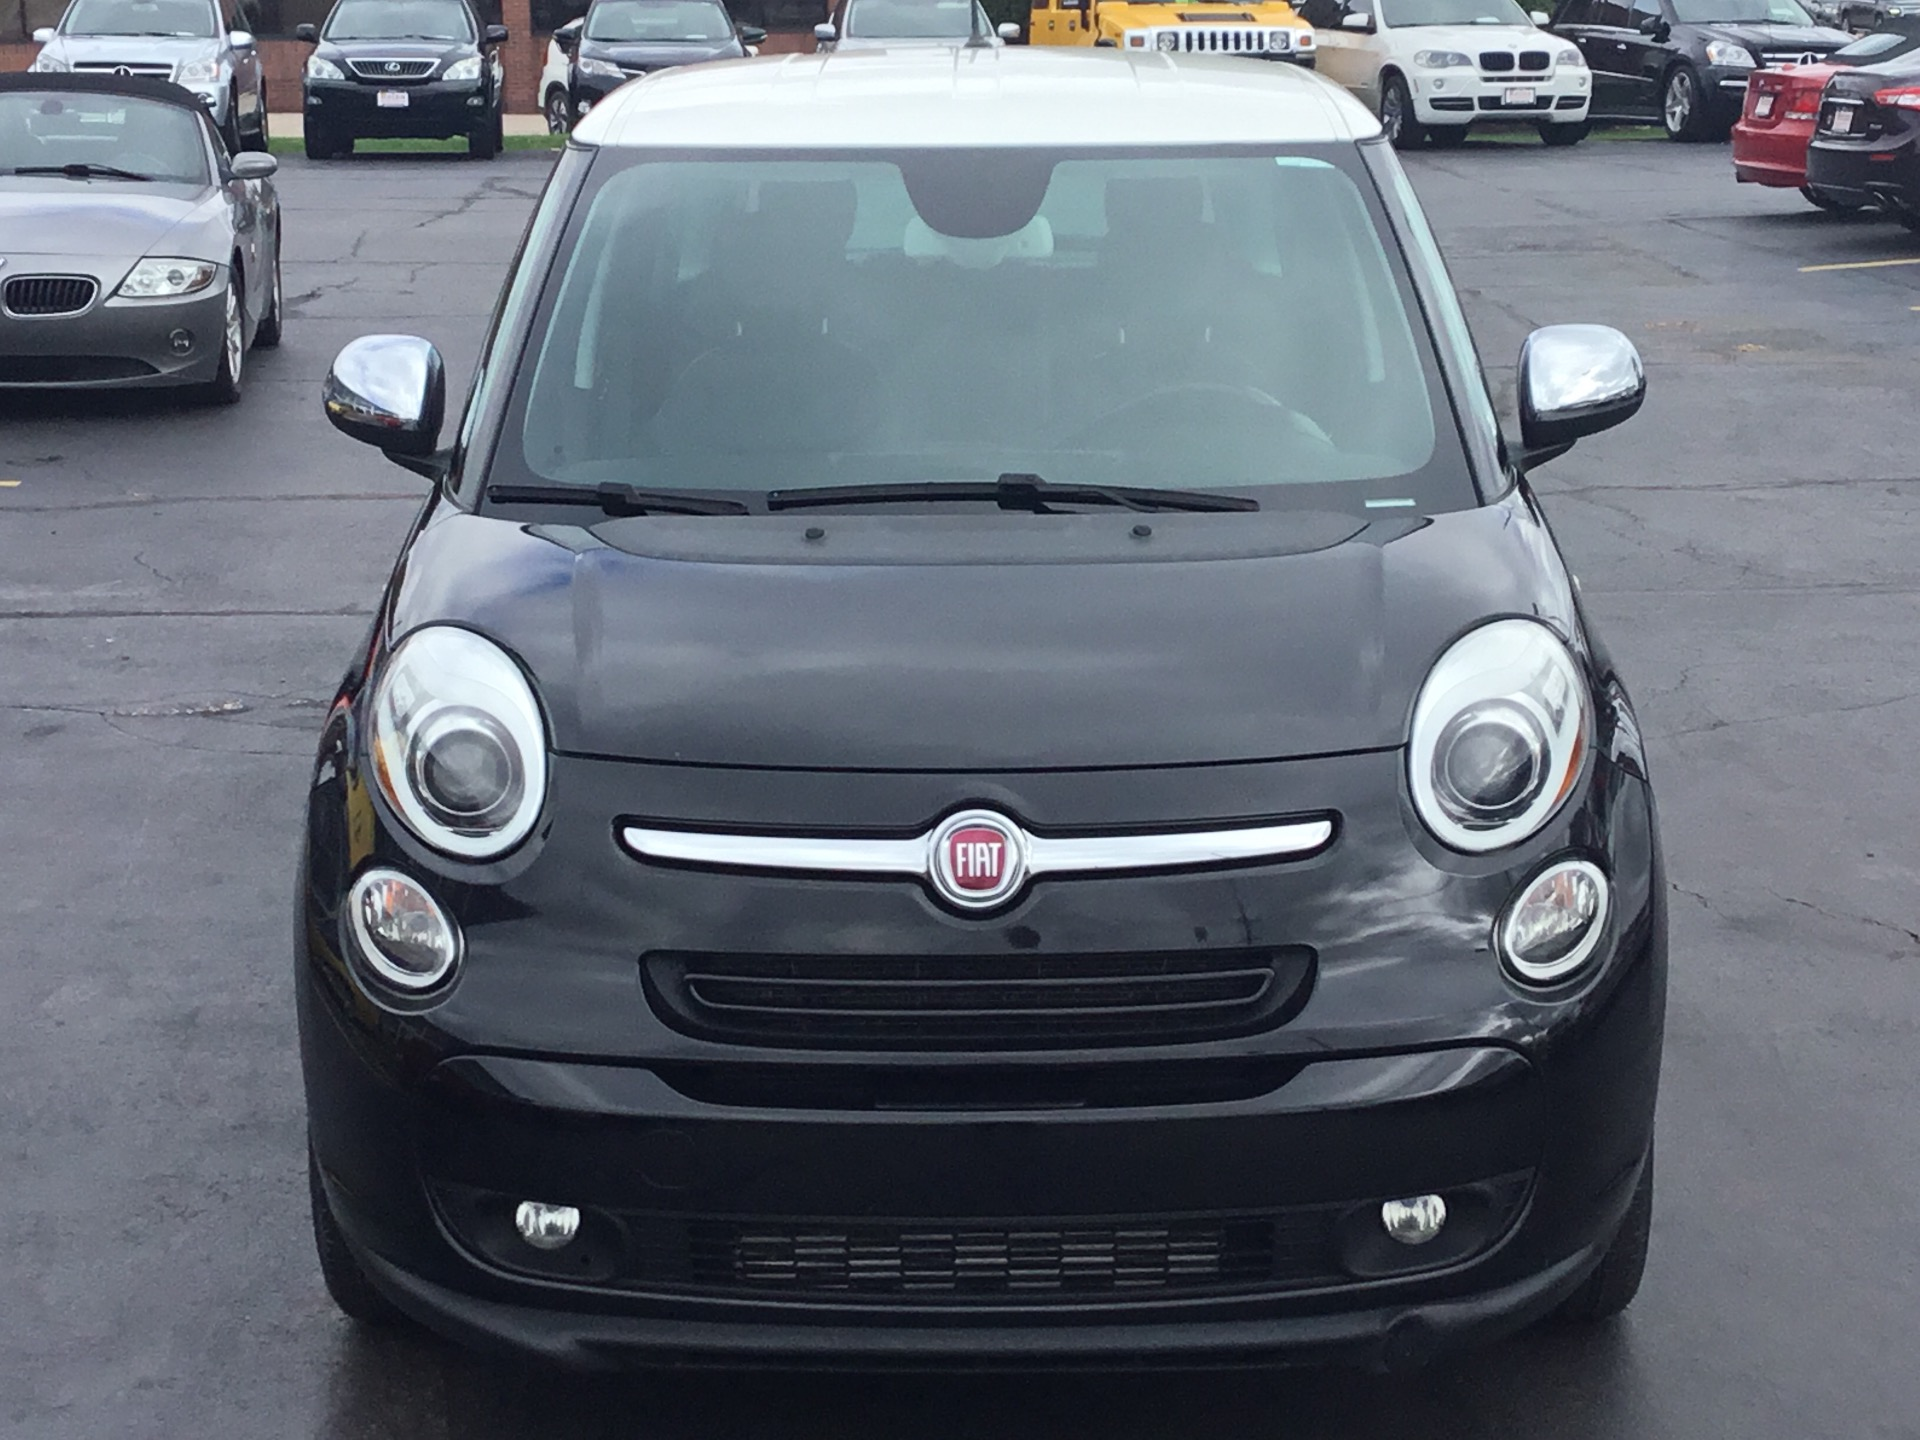 2014 fiat 500l lounge stock 4844 for sale near brookfield wi wi fiat dealer. Black Bedroom Furniture Sets. Home Design Ideas